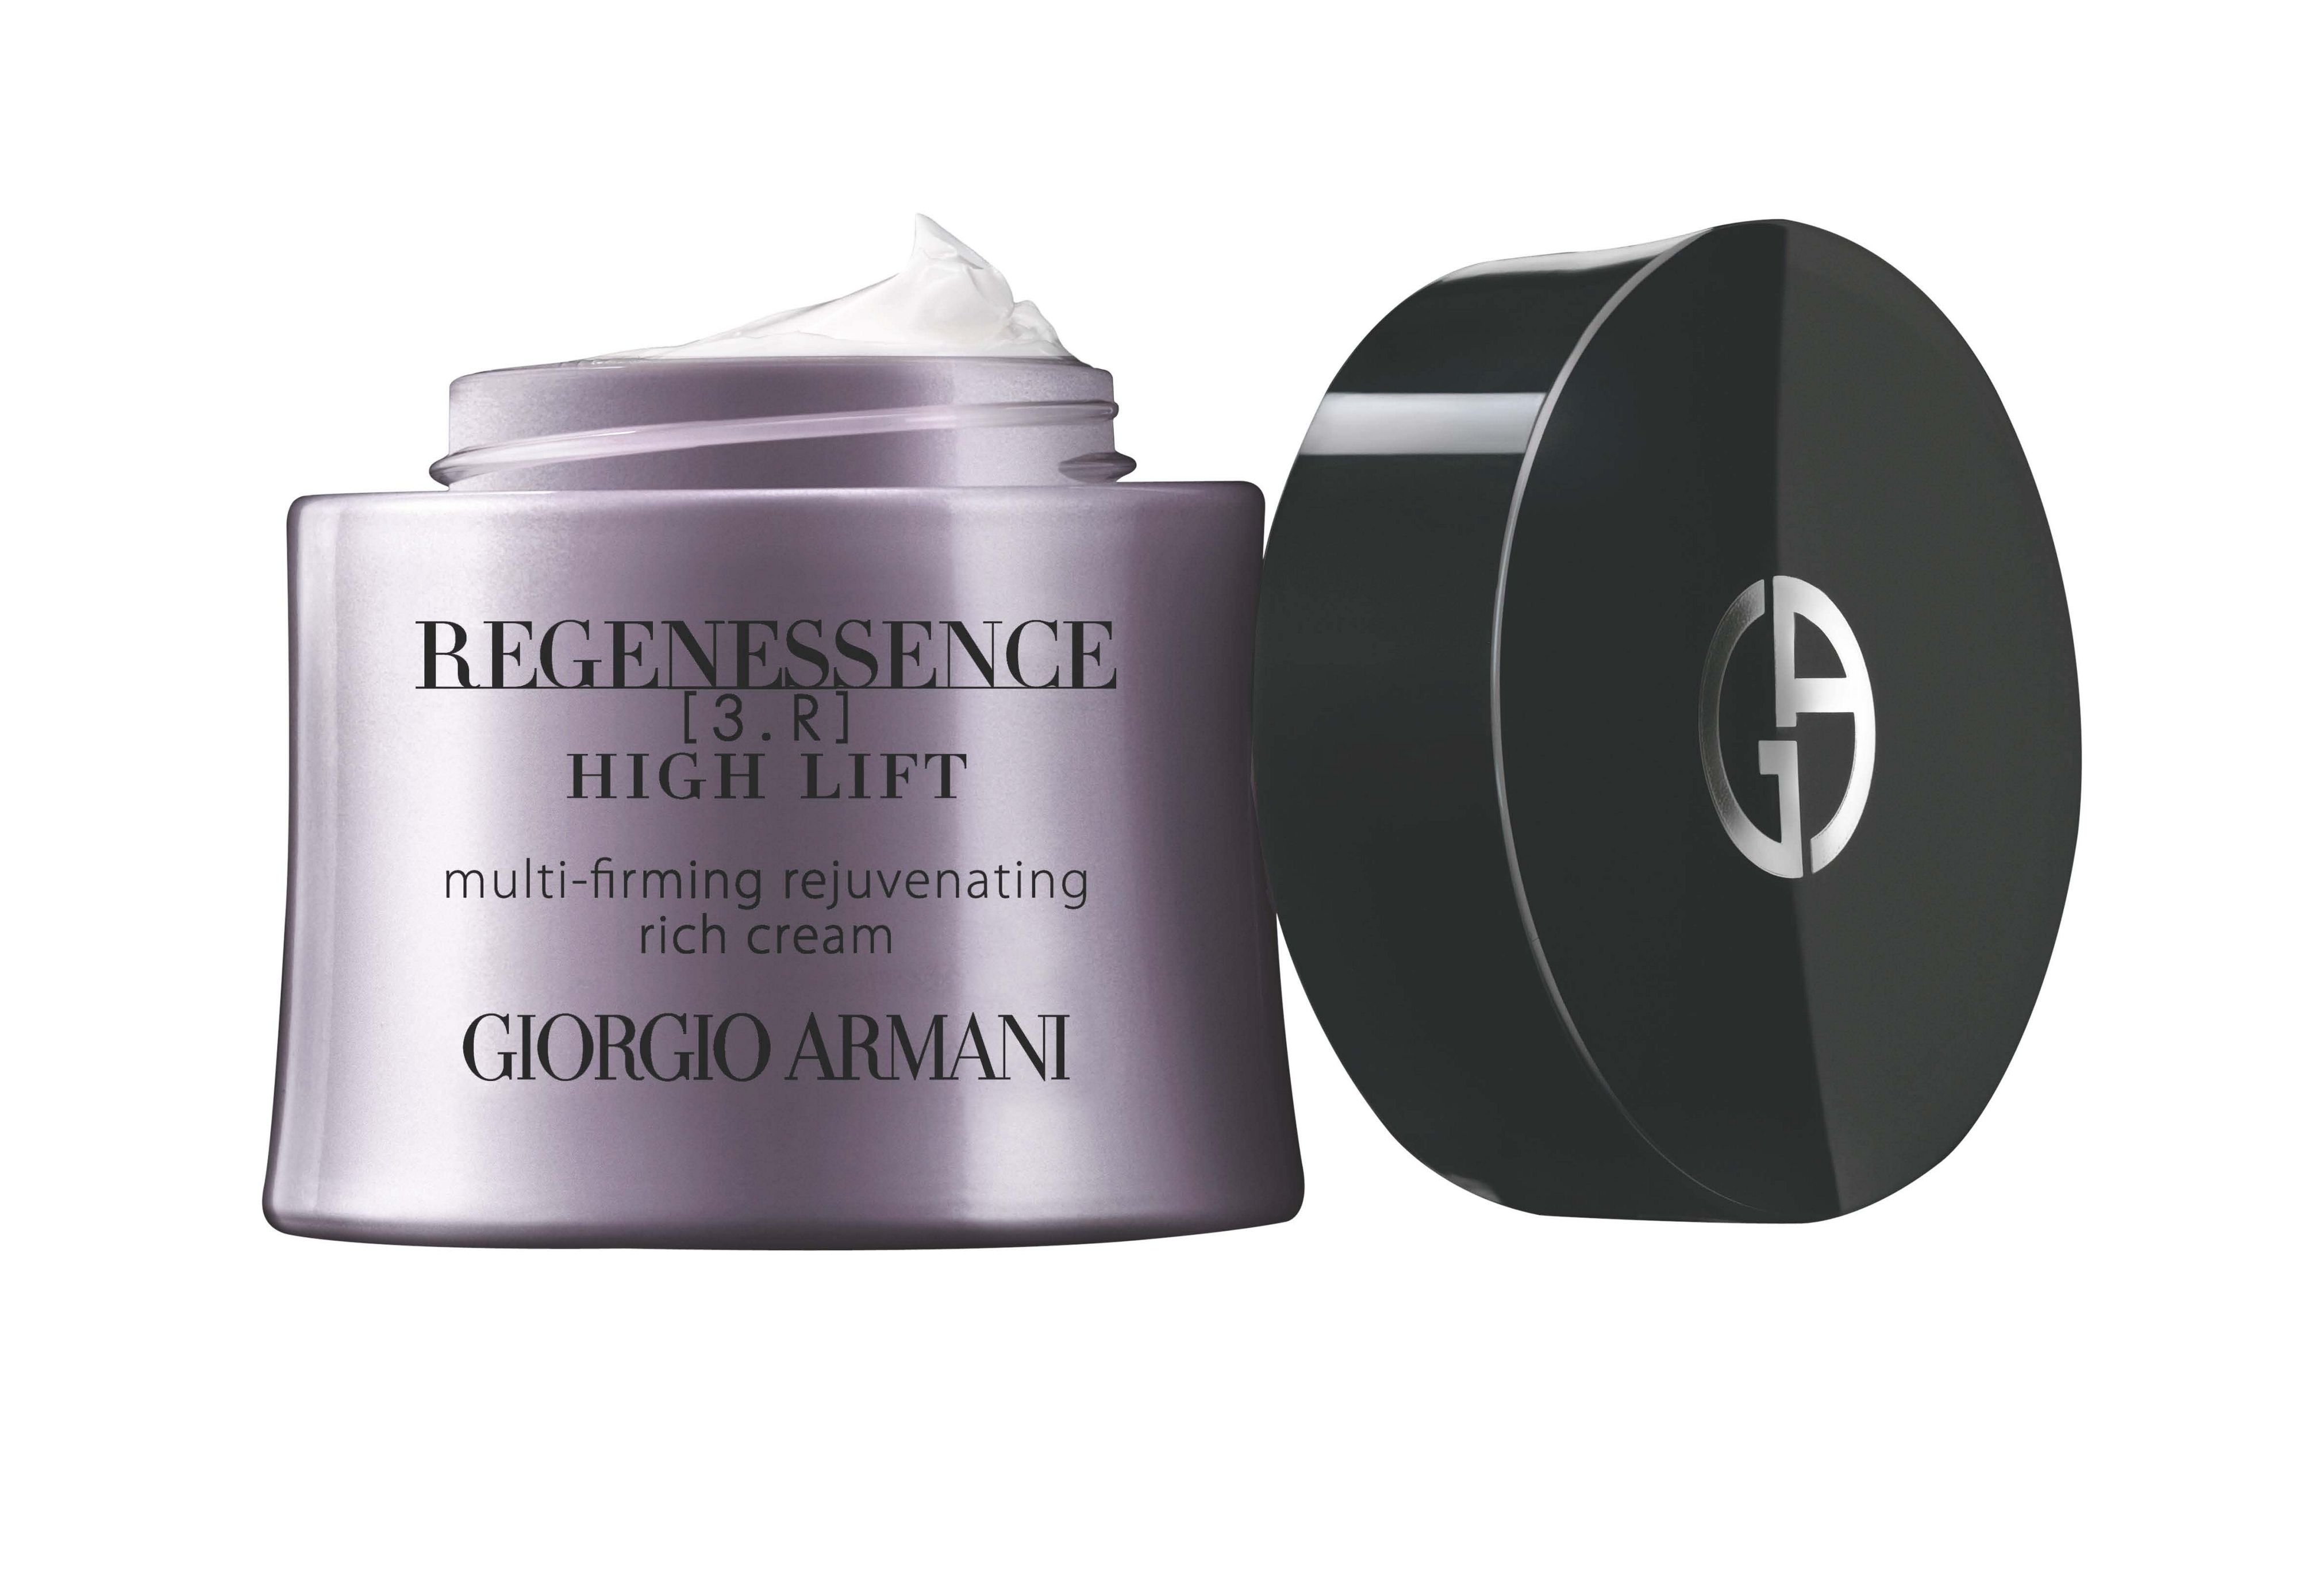 Regenessence High Lift Rich Cream 50ml